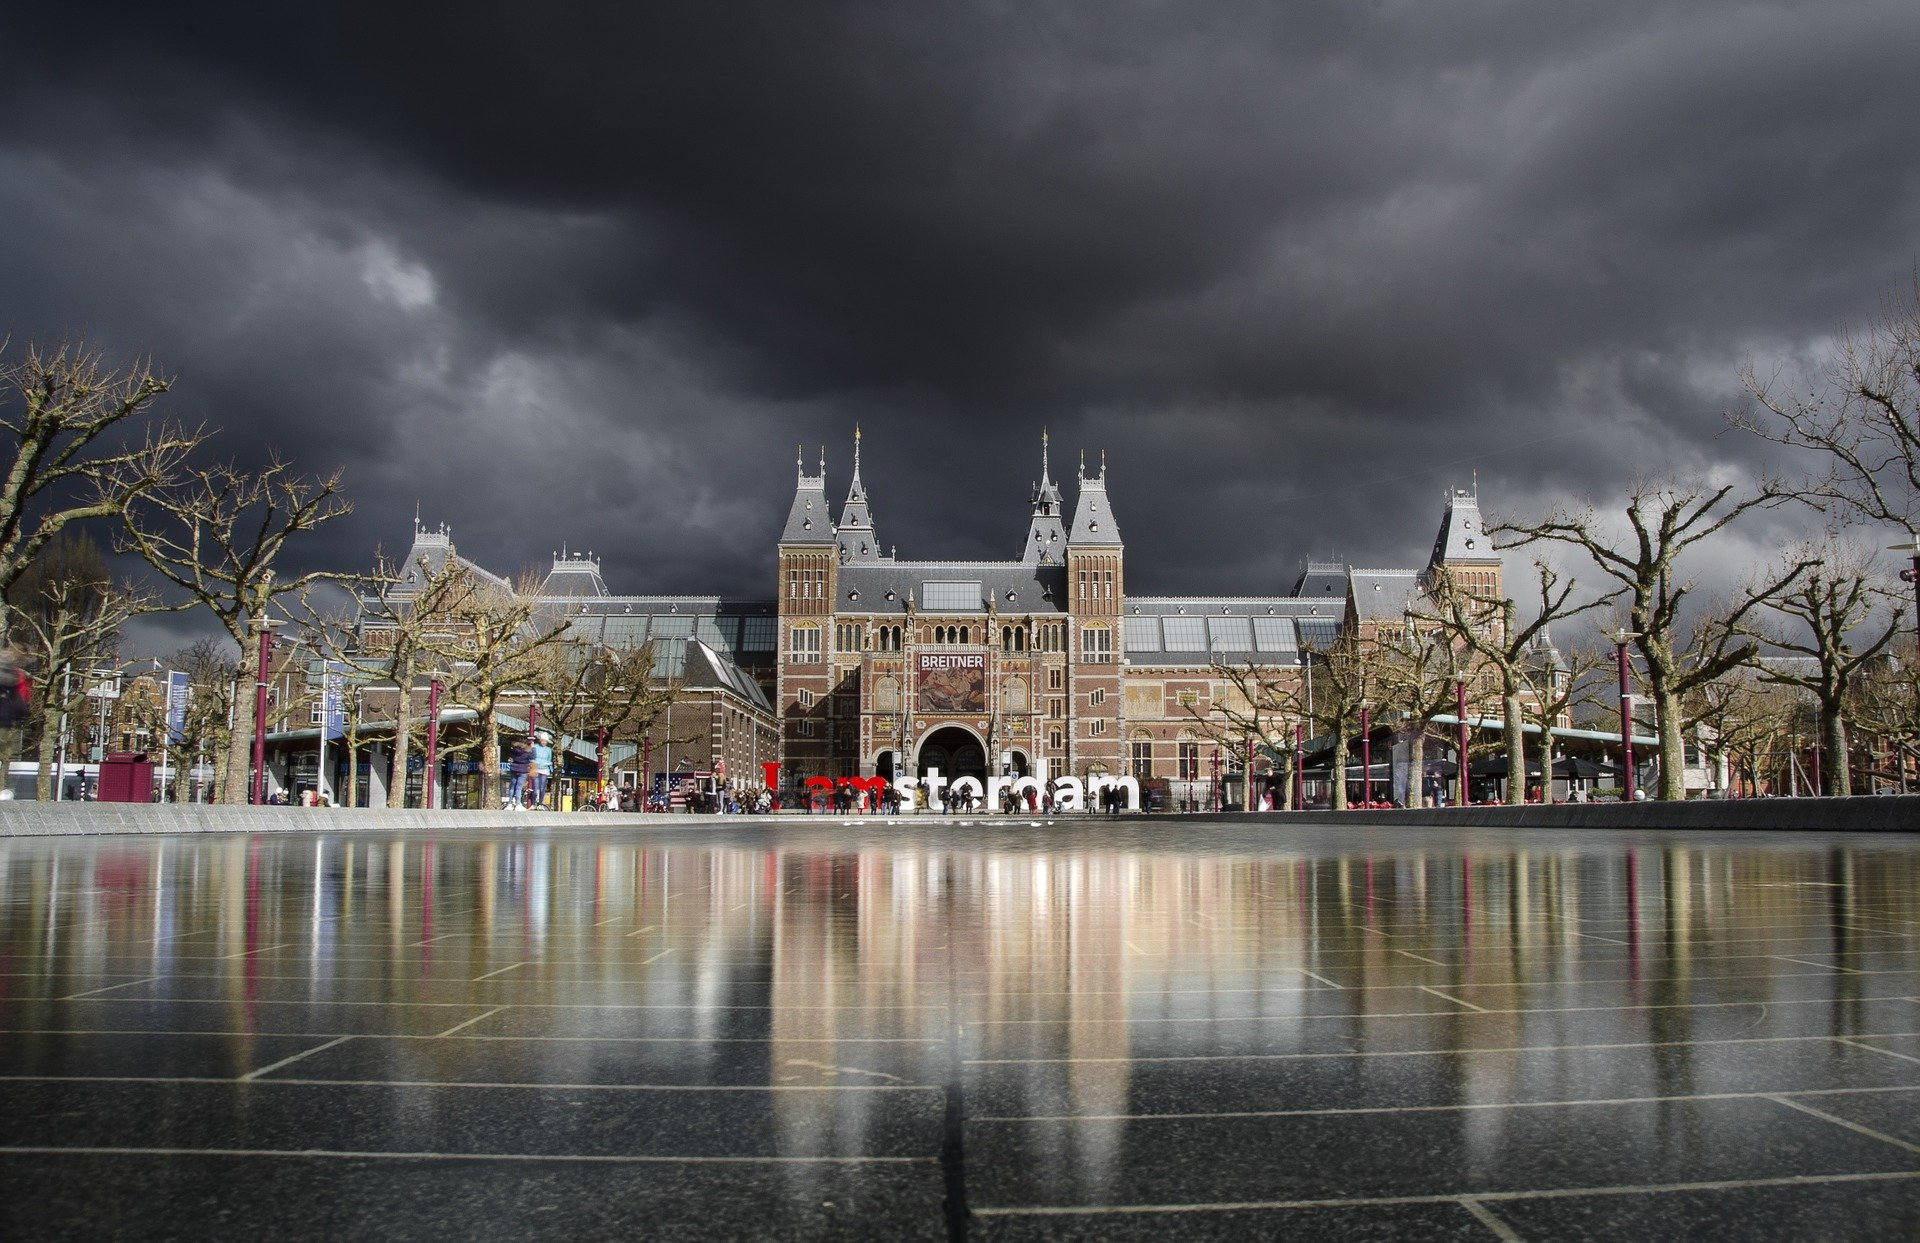 Main Amsterdam Attraction - Rijksmuseum